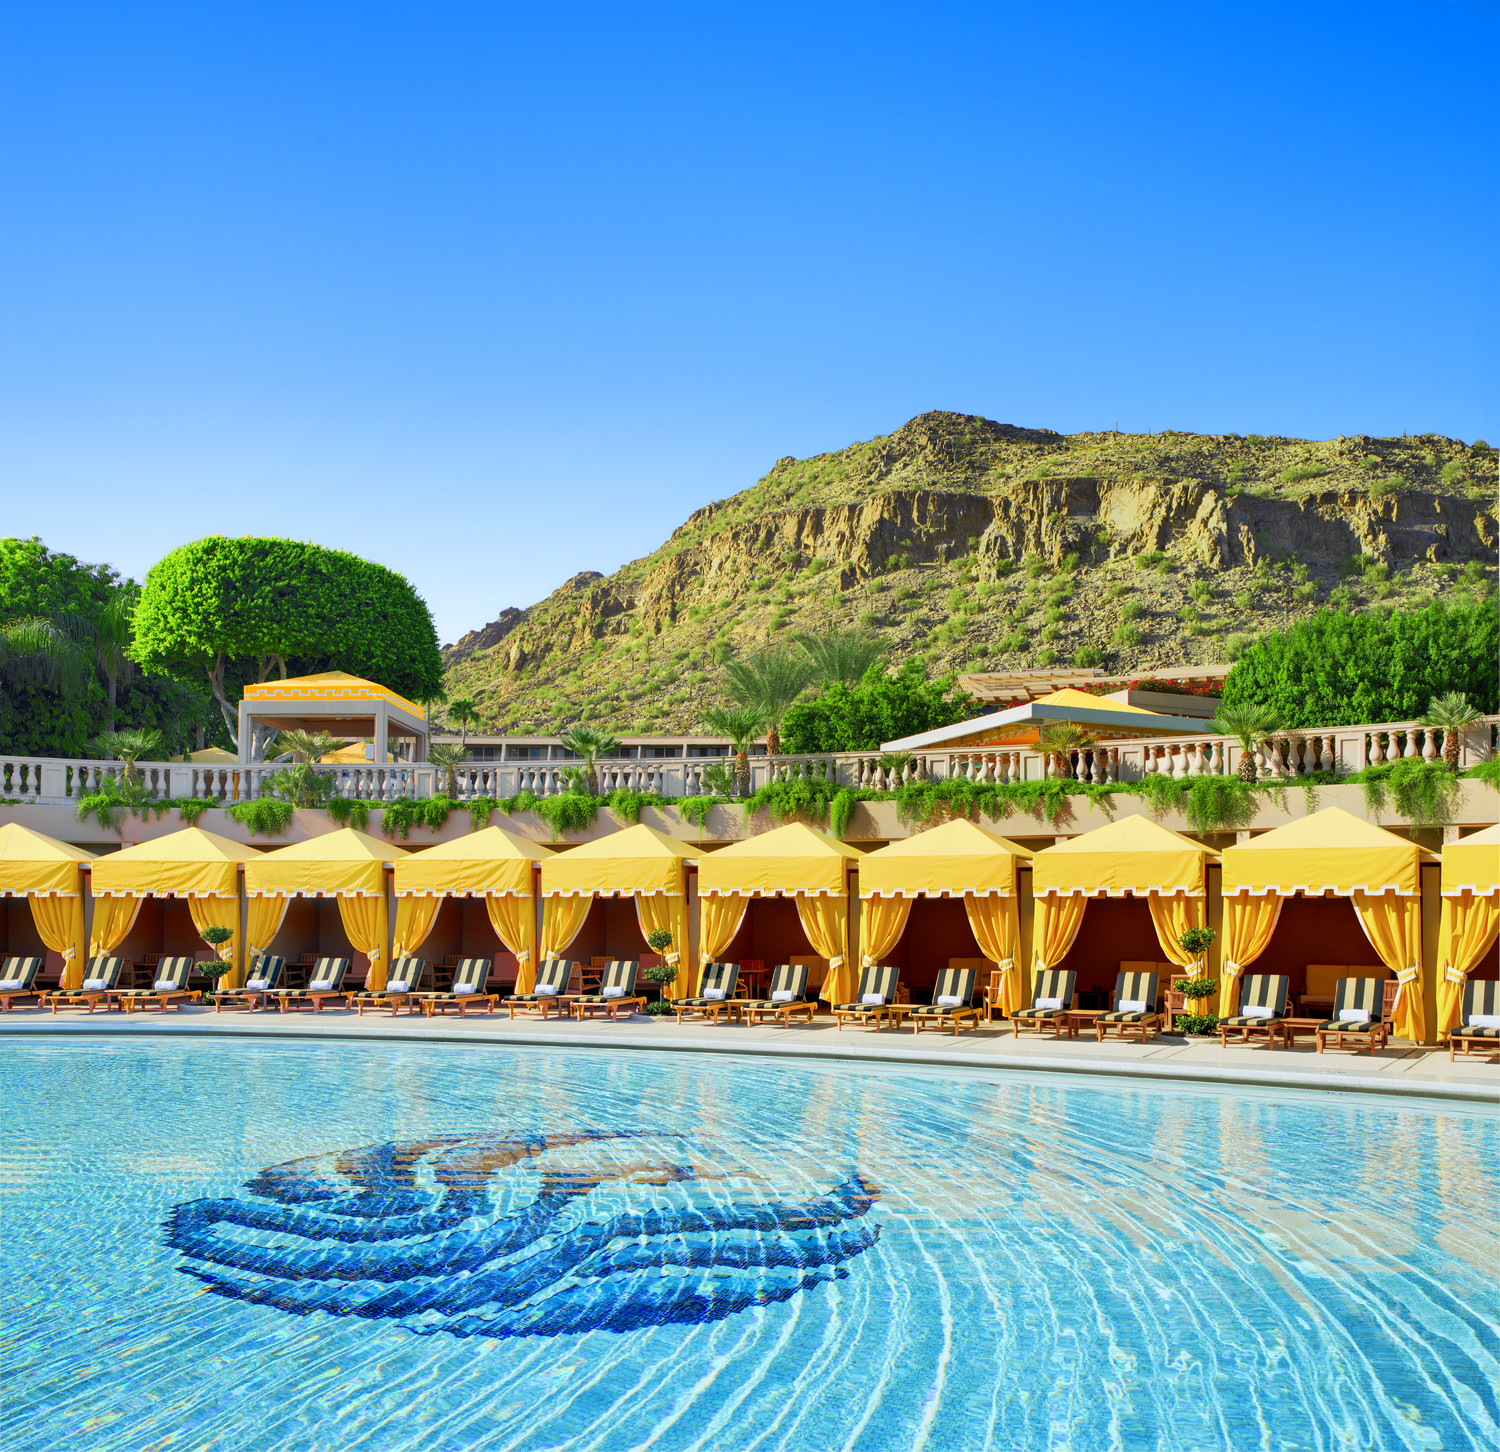 The Phoenician